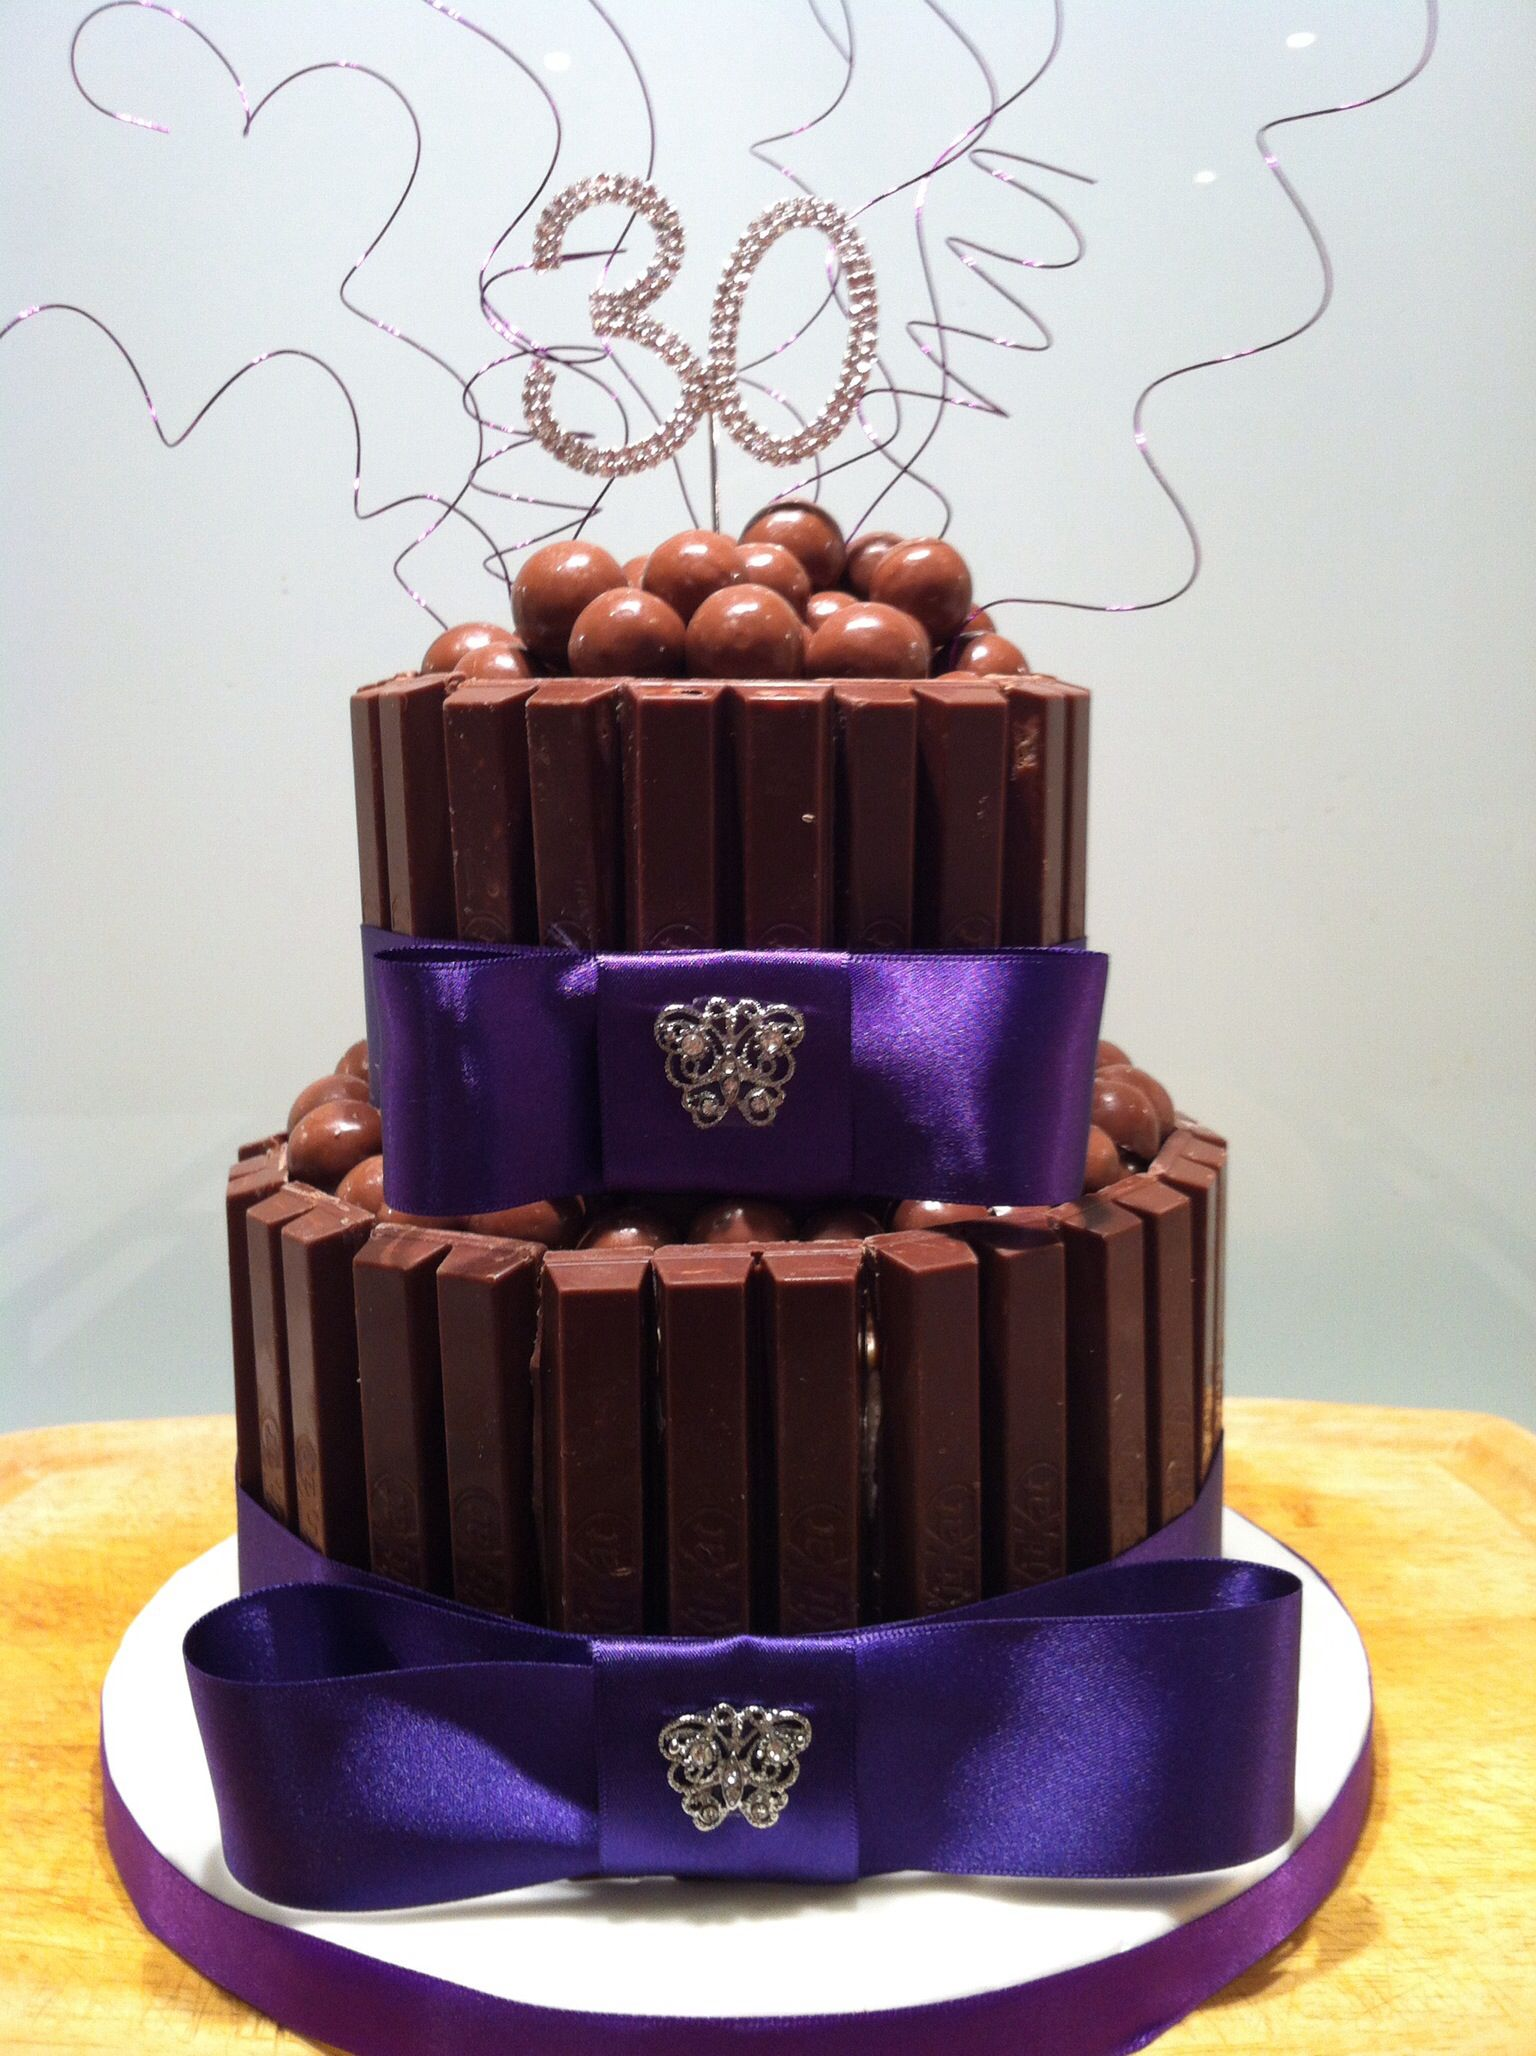 Cake Images For 30th Birthday : Pinterest: Discover and save creative ideas